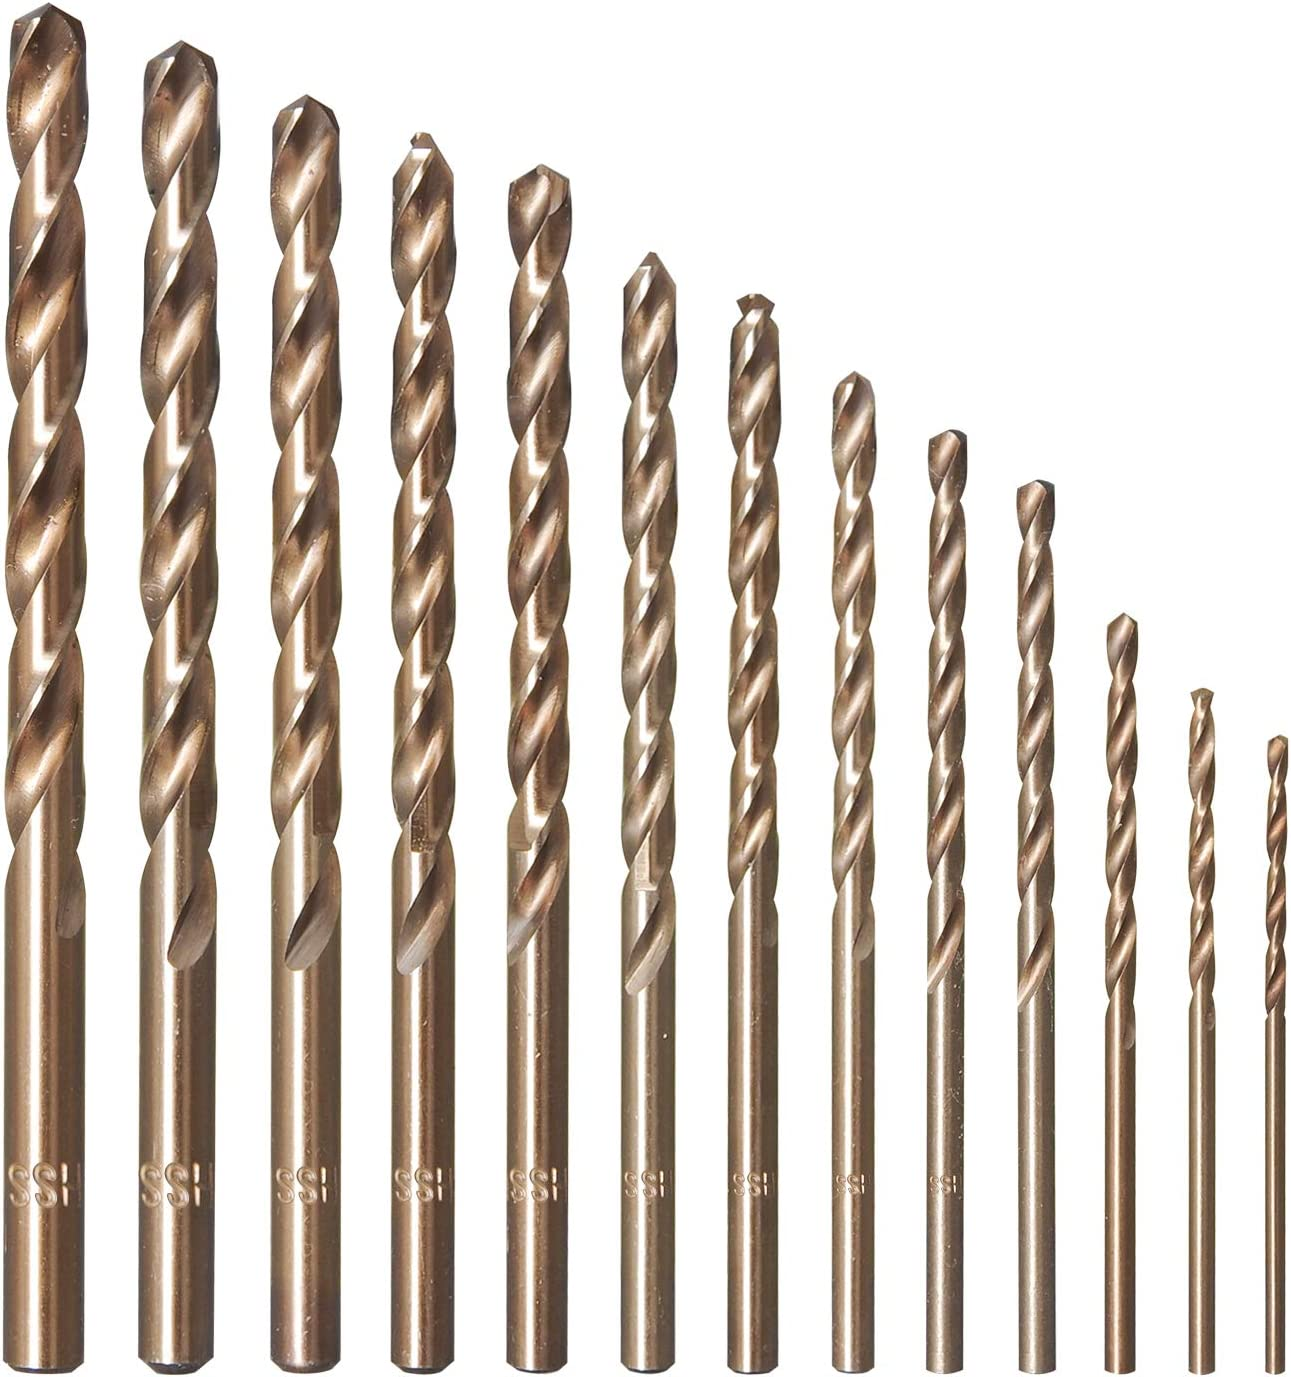 High Speed Steel Hand Pin Vise Tools Wood Durable Punching Drill Bit Twisted for Aluminum Plastics Most Drilling Jobs